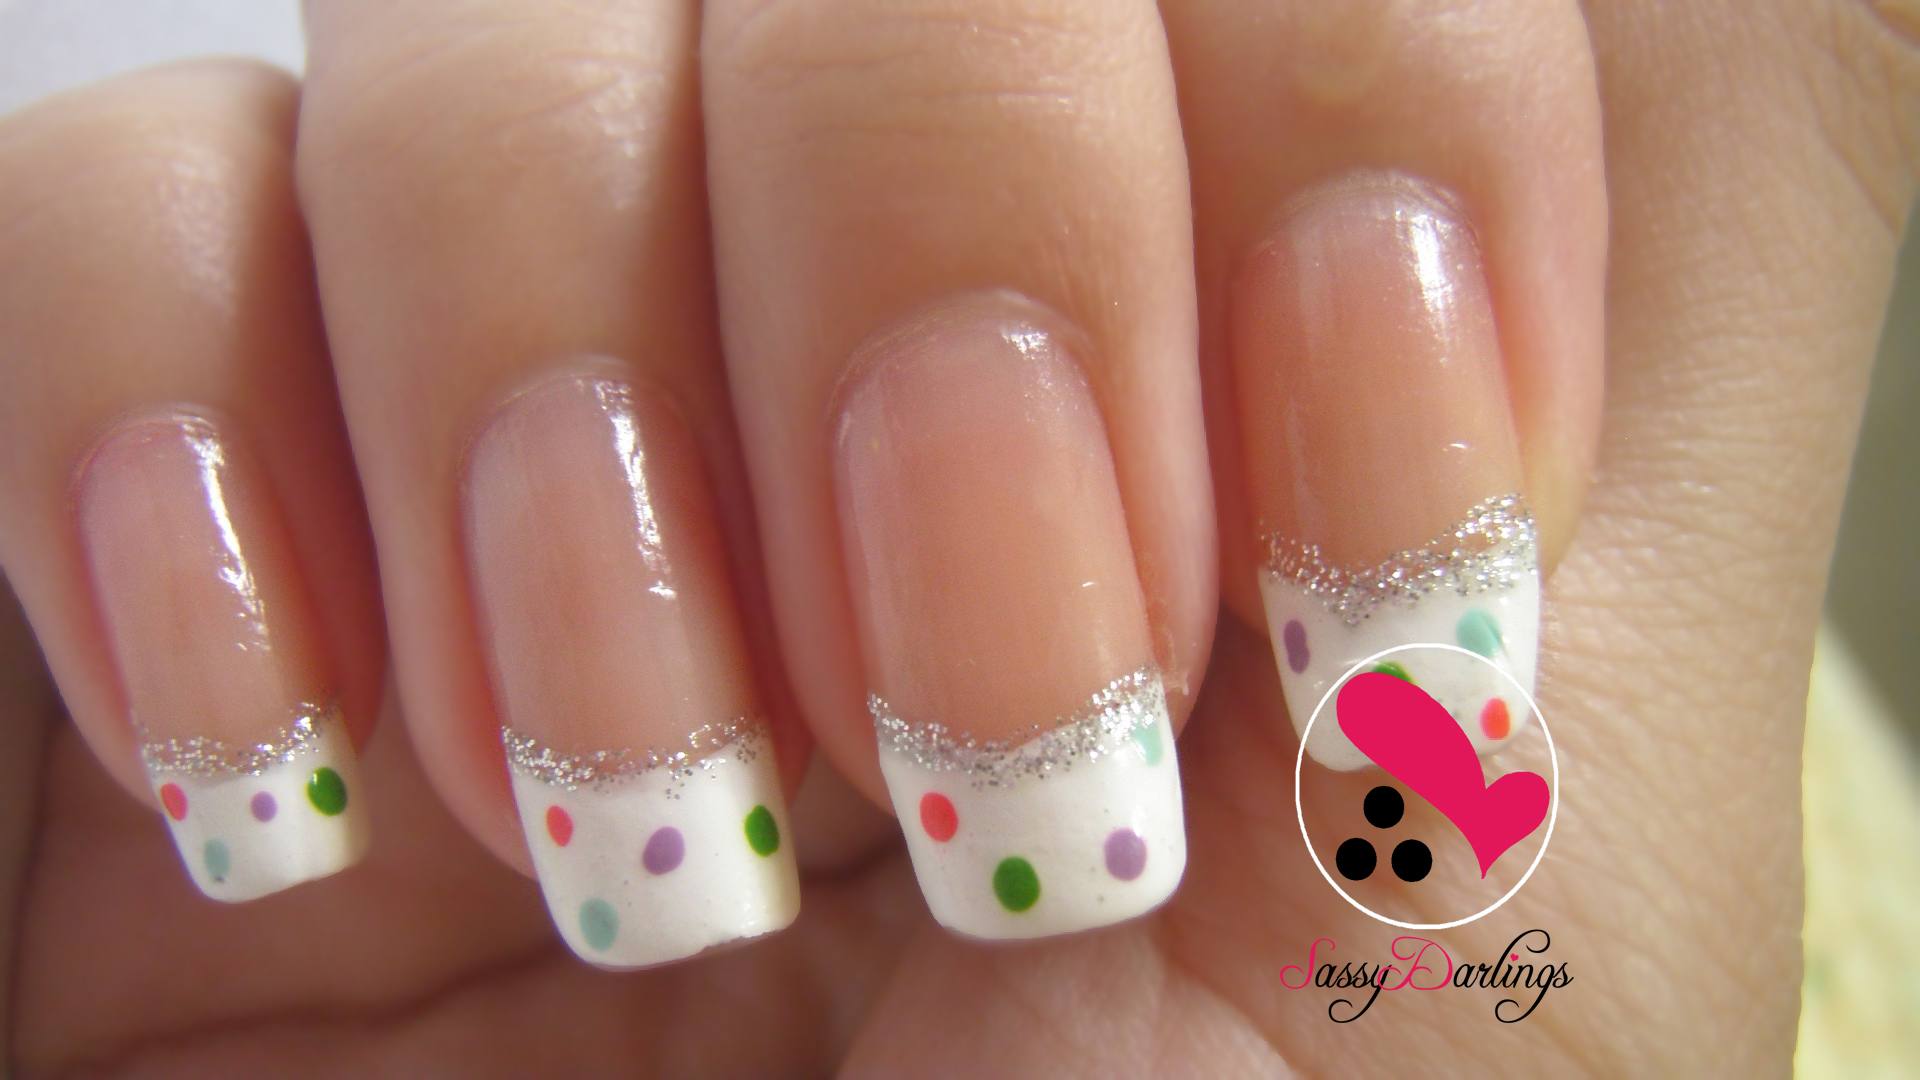 Nail Art Love | +Huge Passion for Nail Art, Food, Kpop and Everything